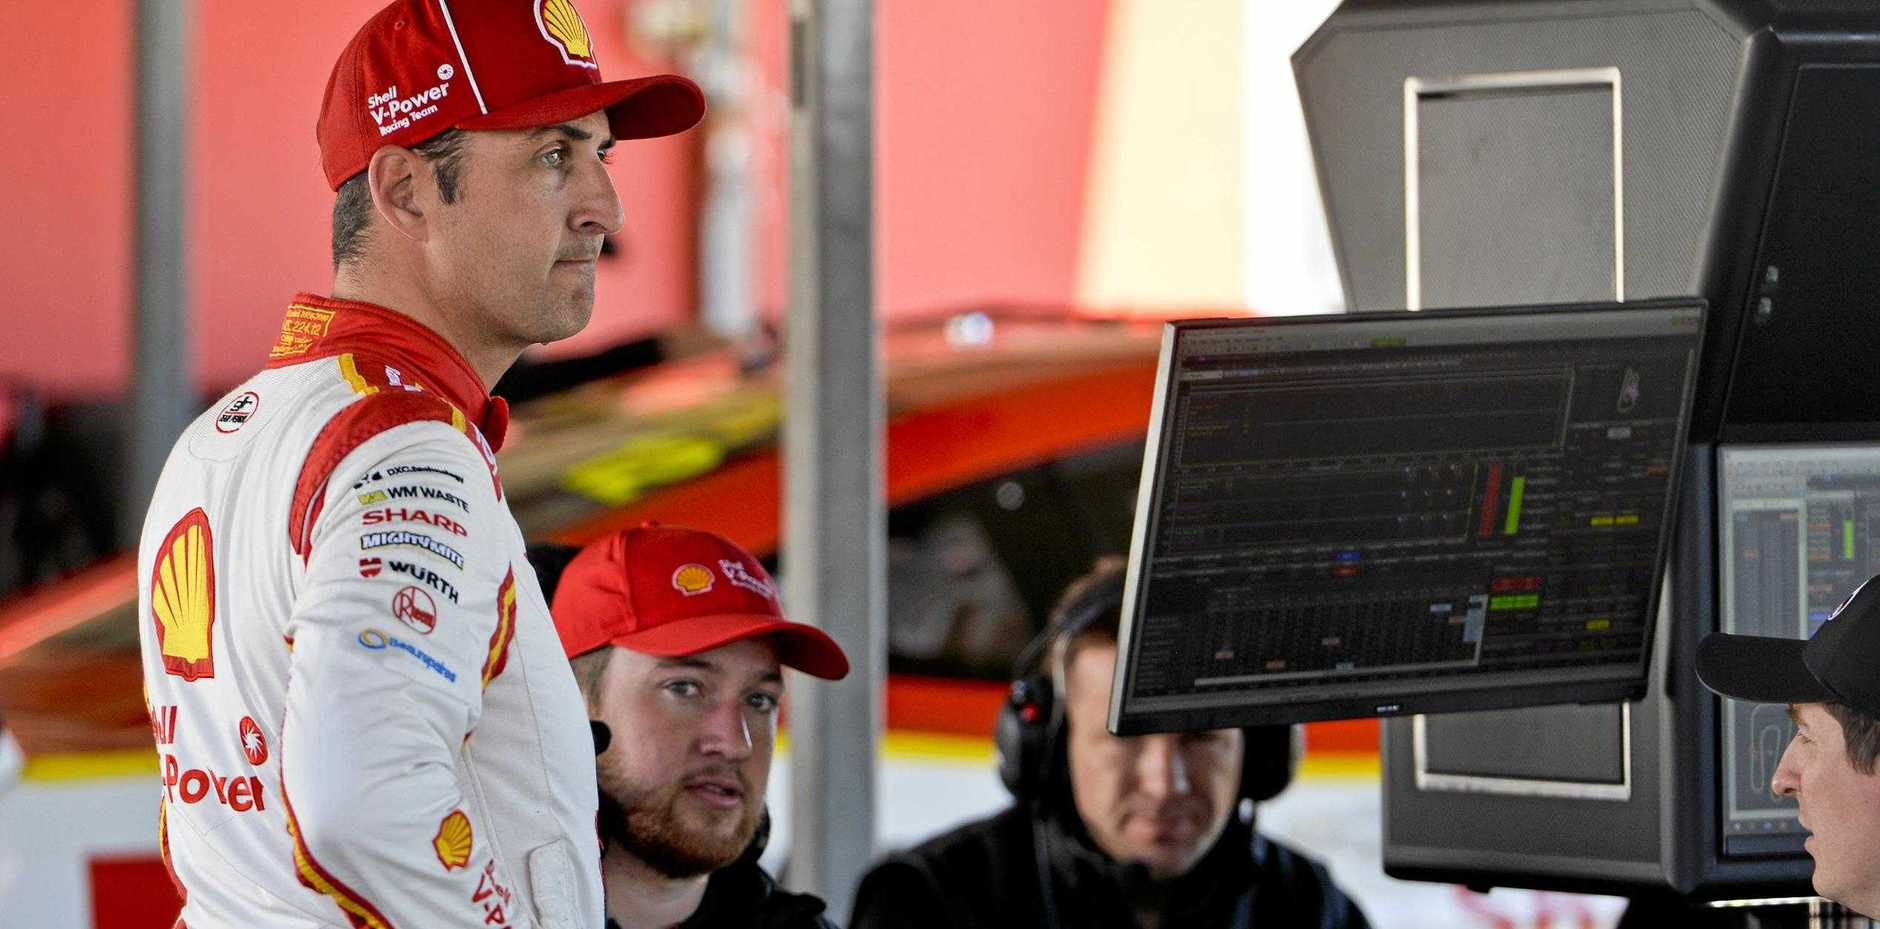 WINNING THOUGHTS: Supercars championship contender Fabian Coulthard assesses the information from the recent pre-Ipswich SuperSprint test day at Queensland Raceway. He goes into this weekend's Ipswich round in second place behind teammate Scott McLaughlin.